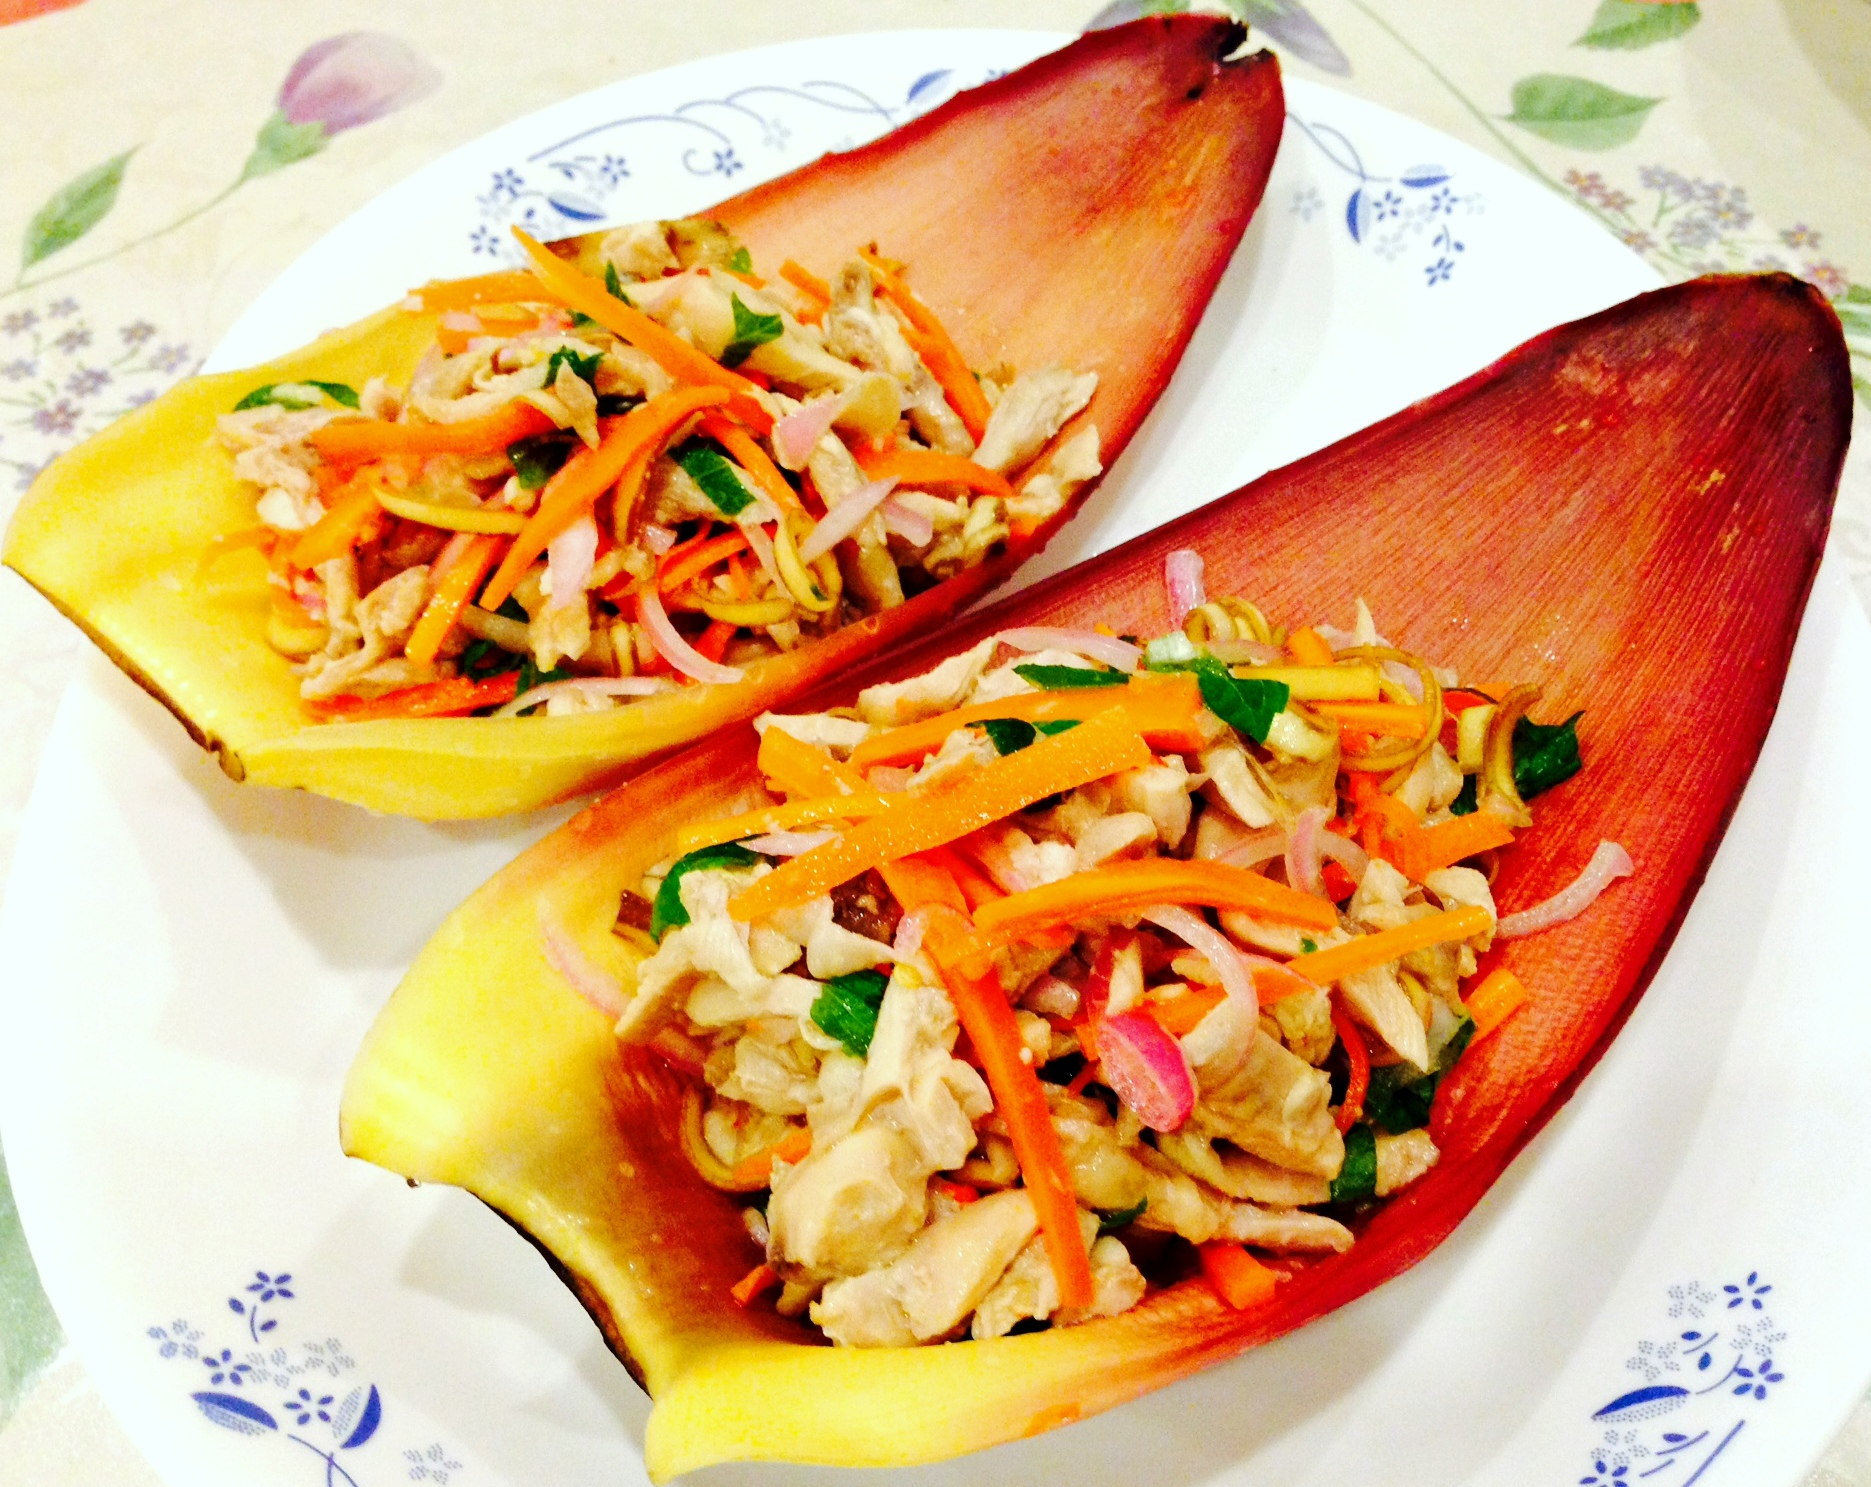 Vietnamese Chicken & Banana Flower Salad